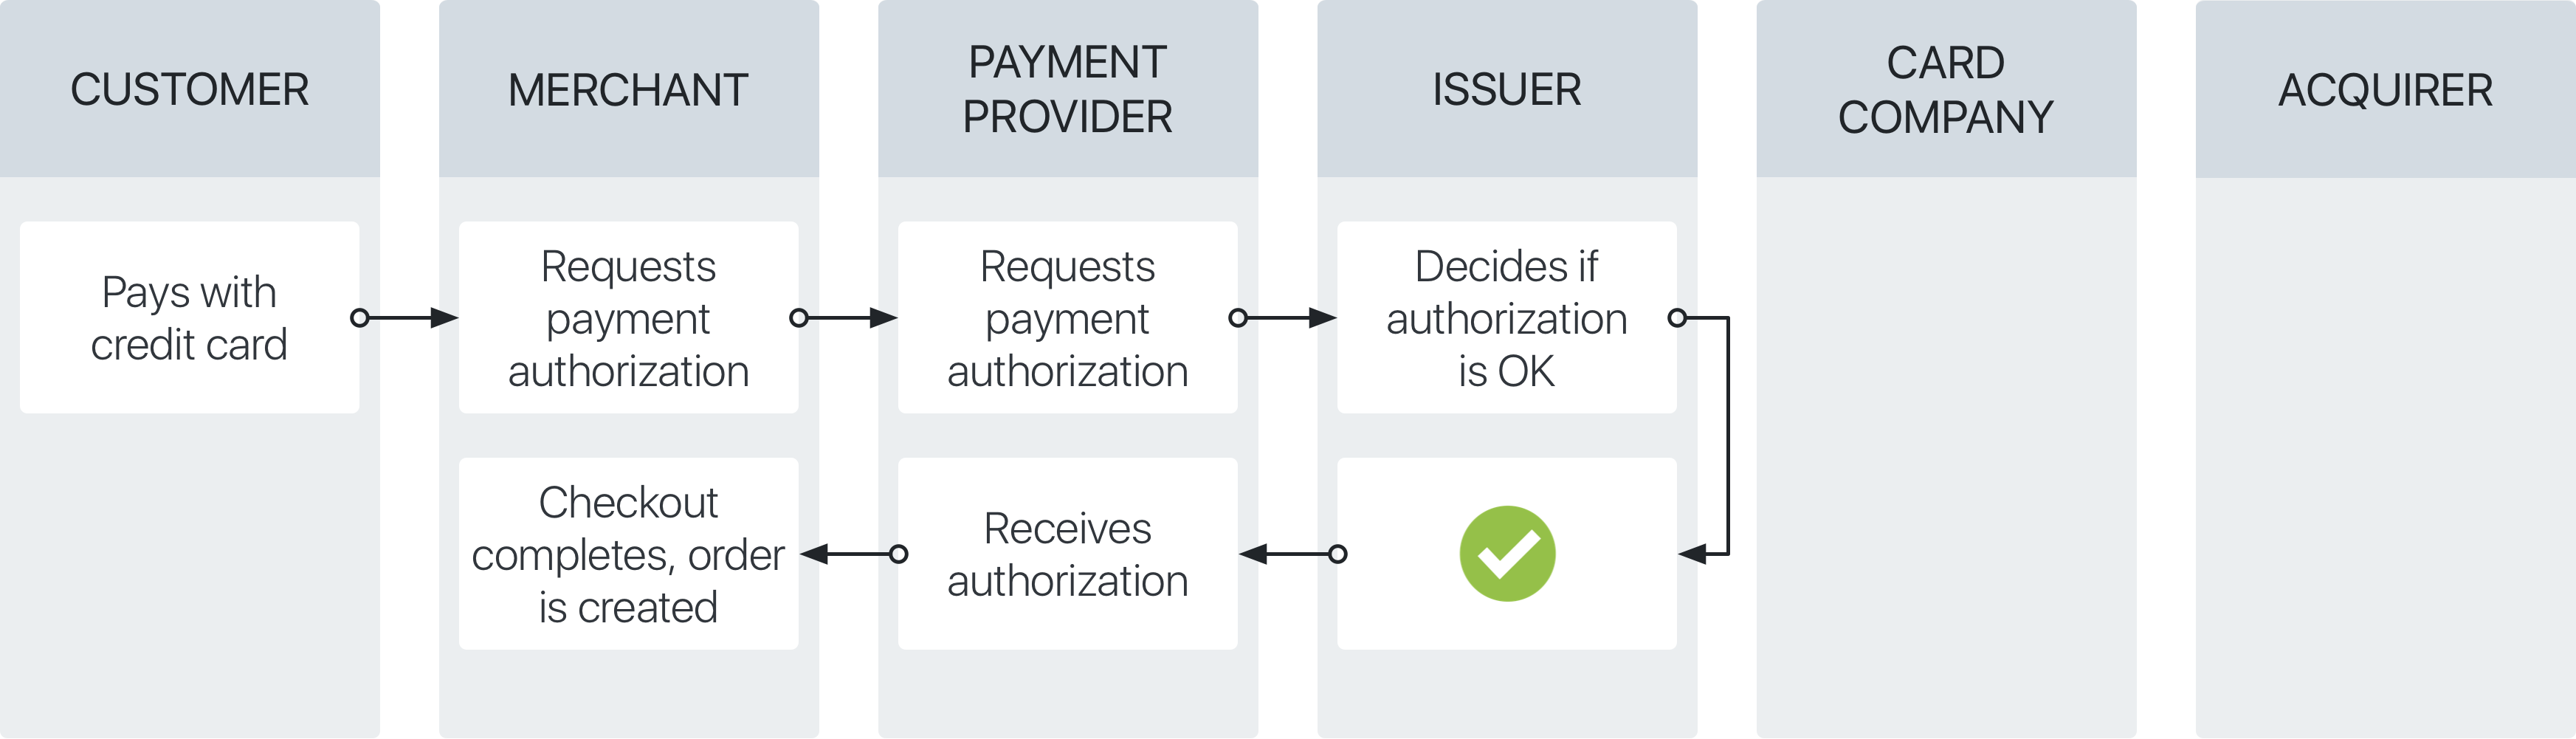 Authorization stage of the credit card payment process